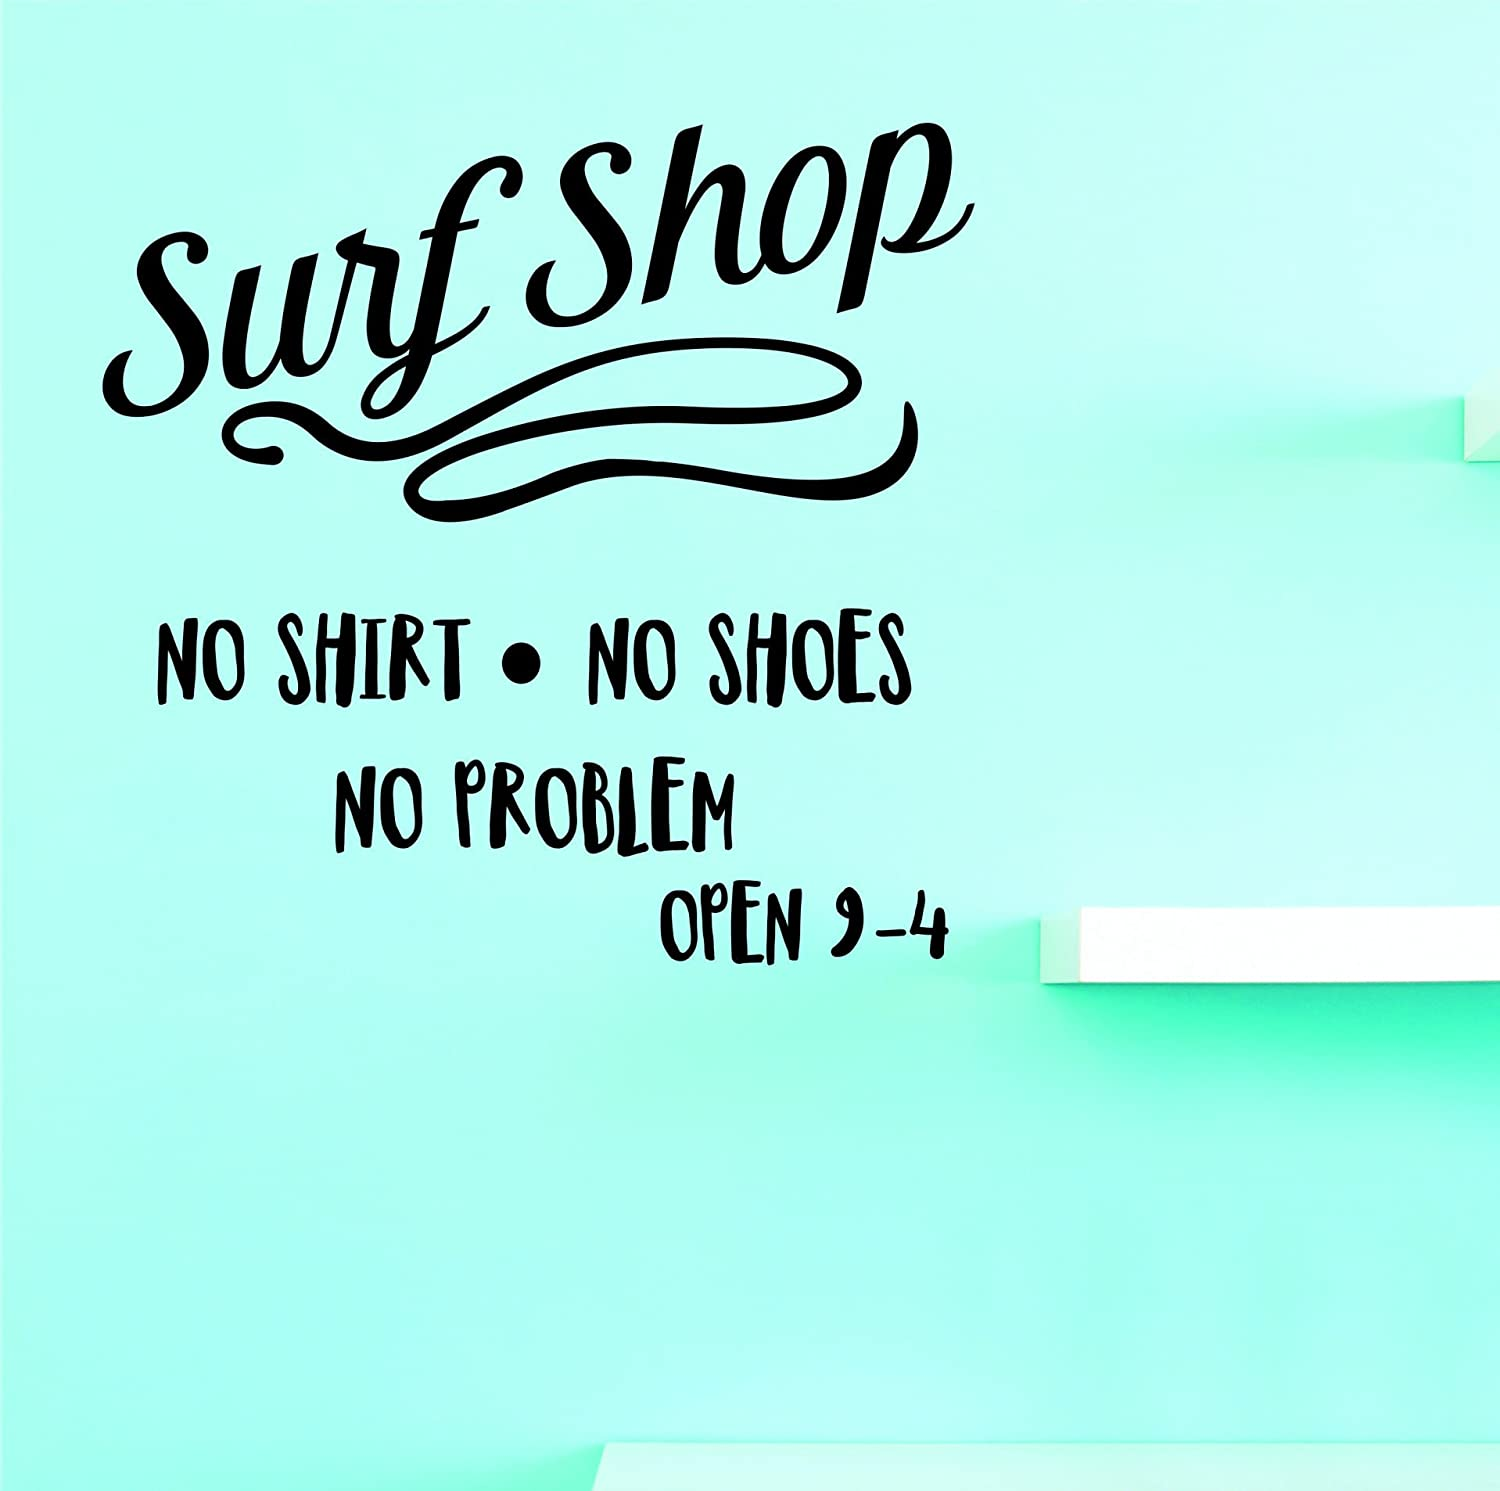 10 Inches x 20 Inches Color Design with Vinyl JER 2023 1 Hot New Decals Surf Shop No Shirt No Shoes No Problem Wall Art Size Black 10 x 20,